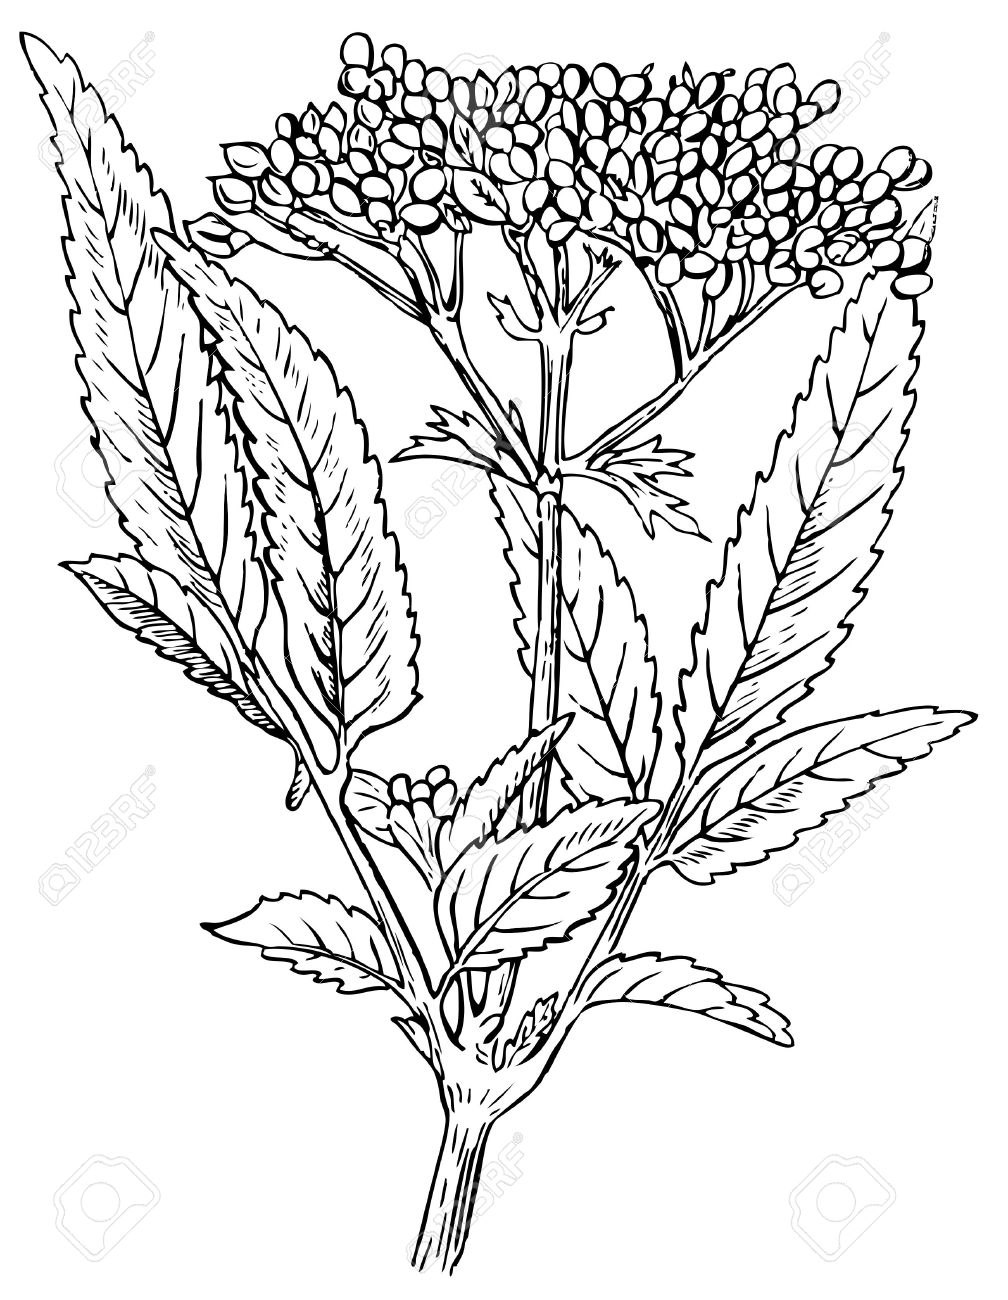 Plant Danewort Dwarf Elder Royalty Free Cliparts, Vectors, And.